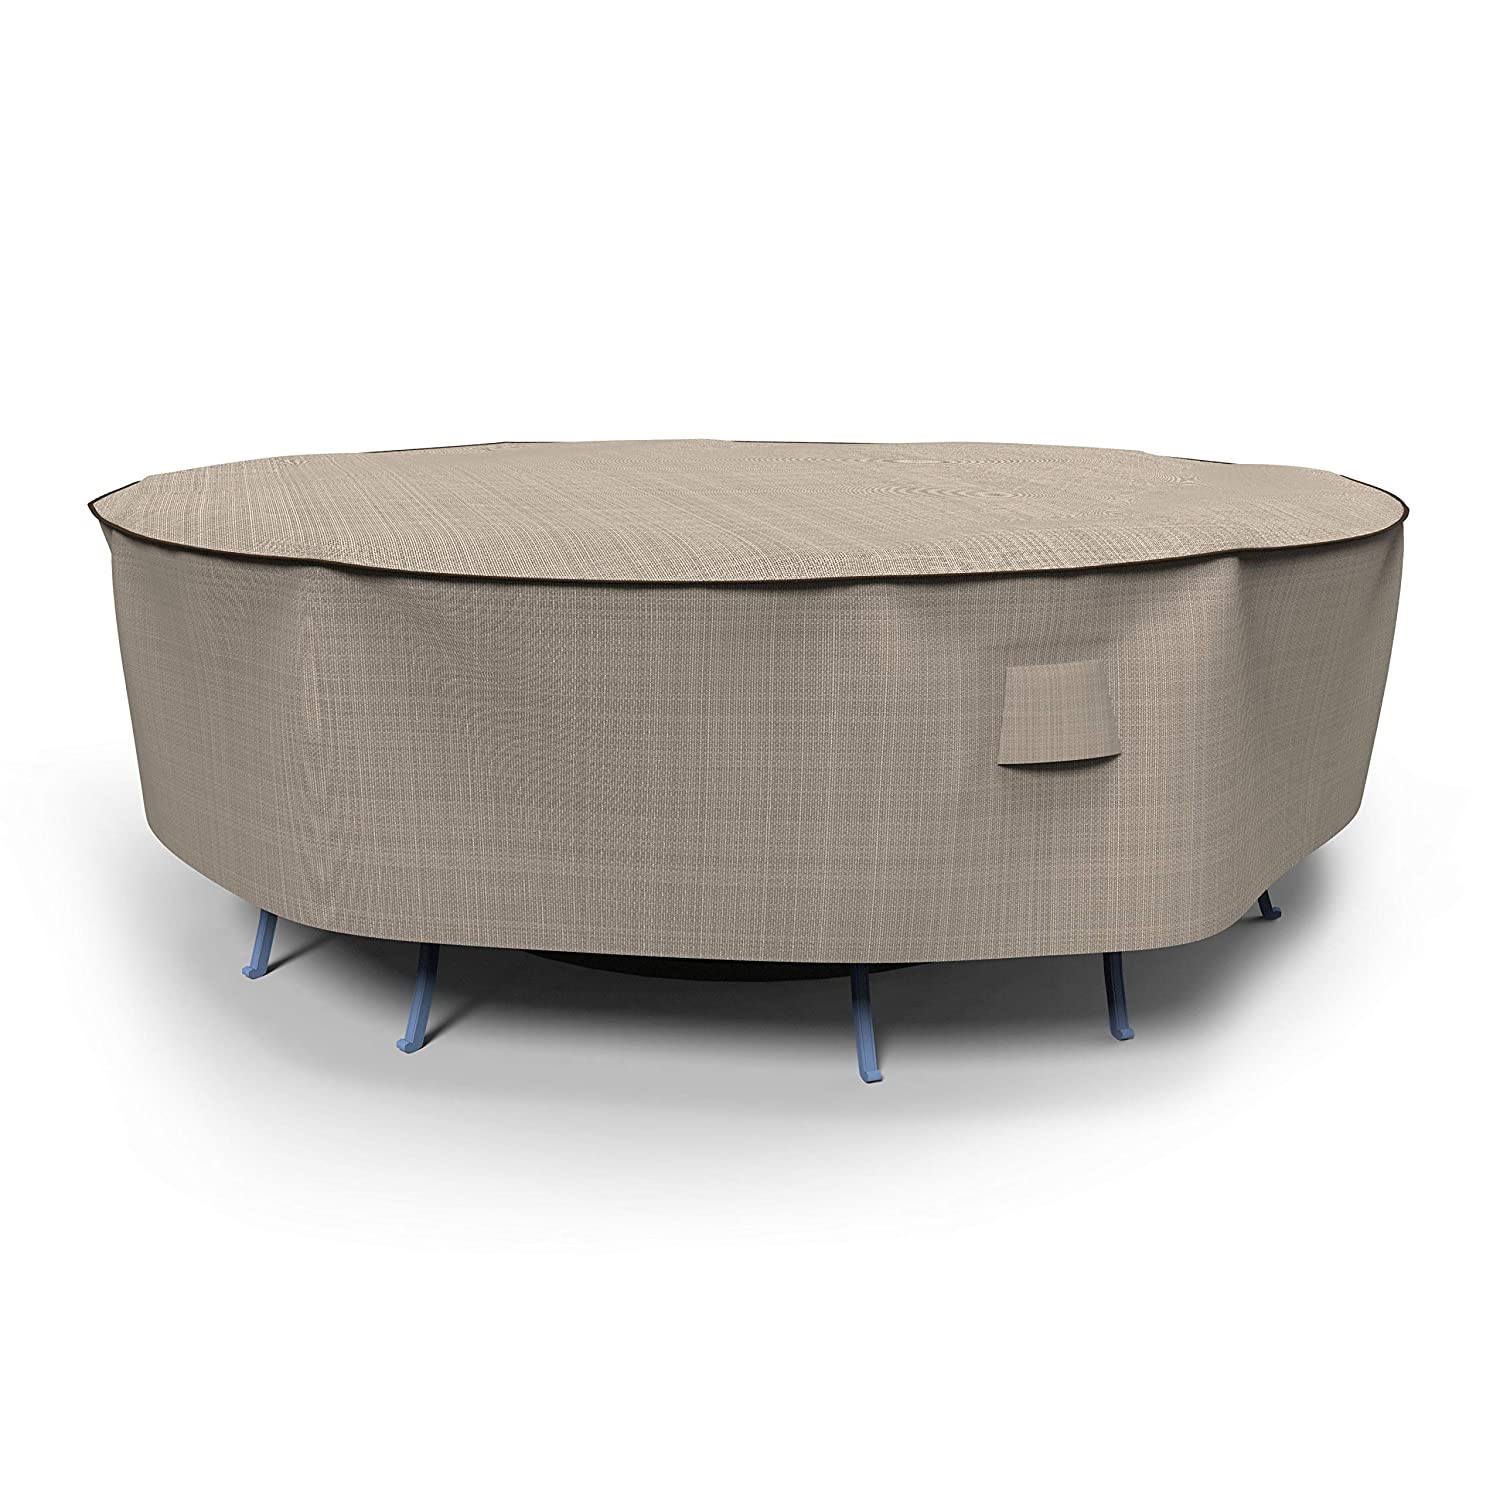 EmpirePatio Tan Tweed Round Patio Table and Chairs Combo Cover, Large